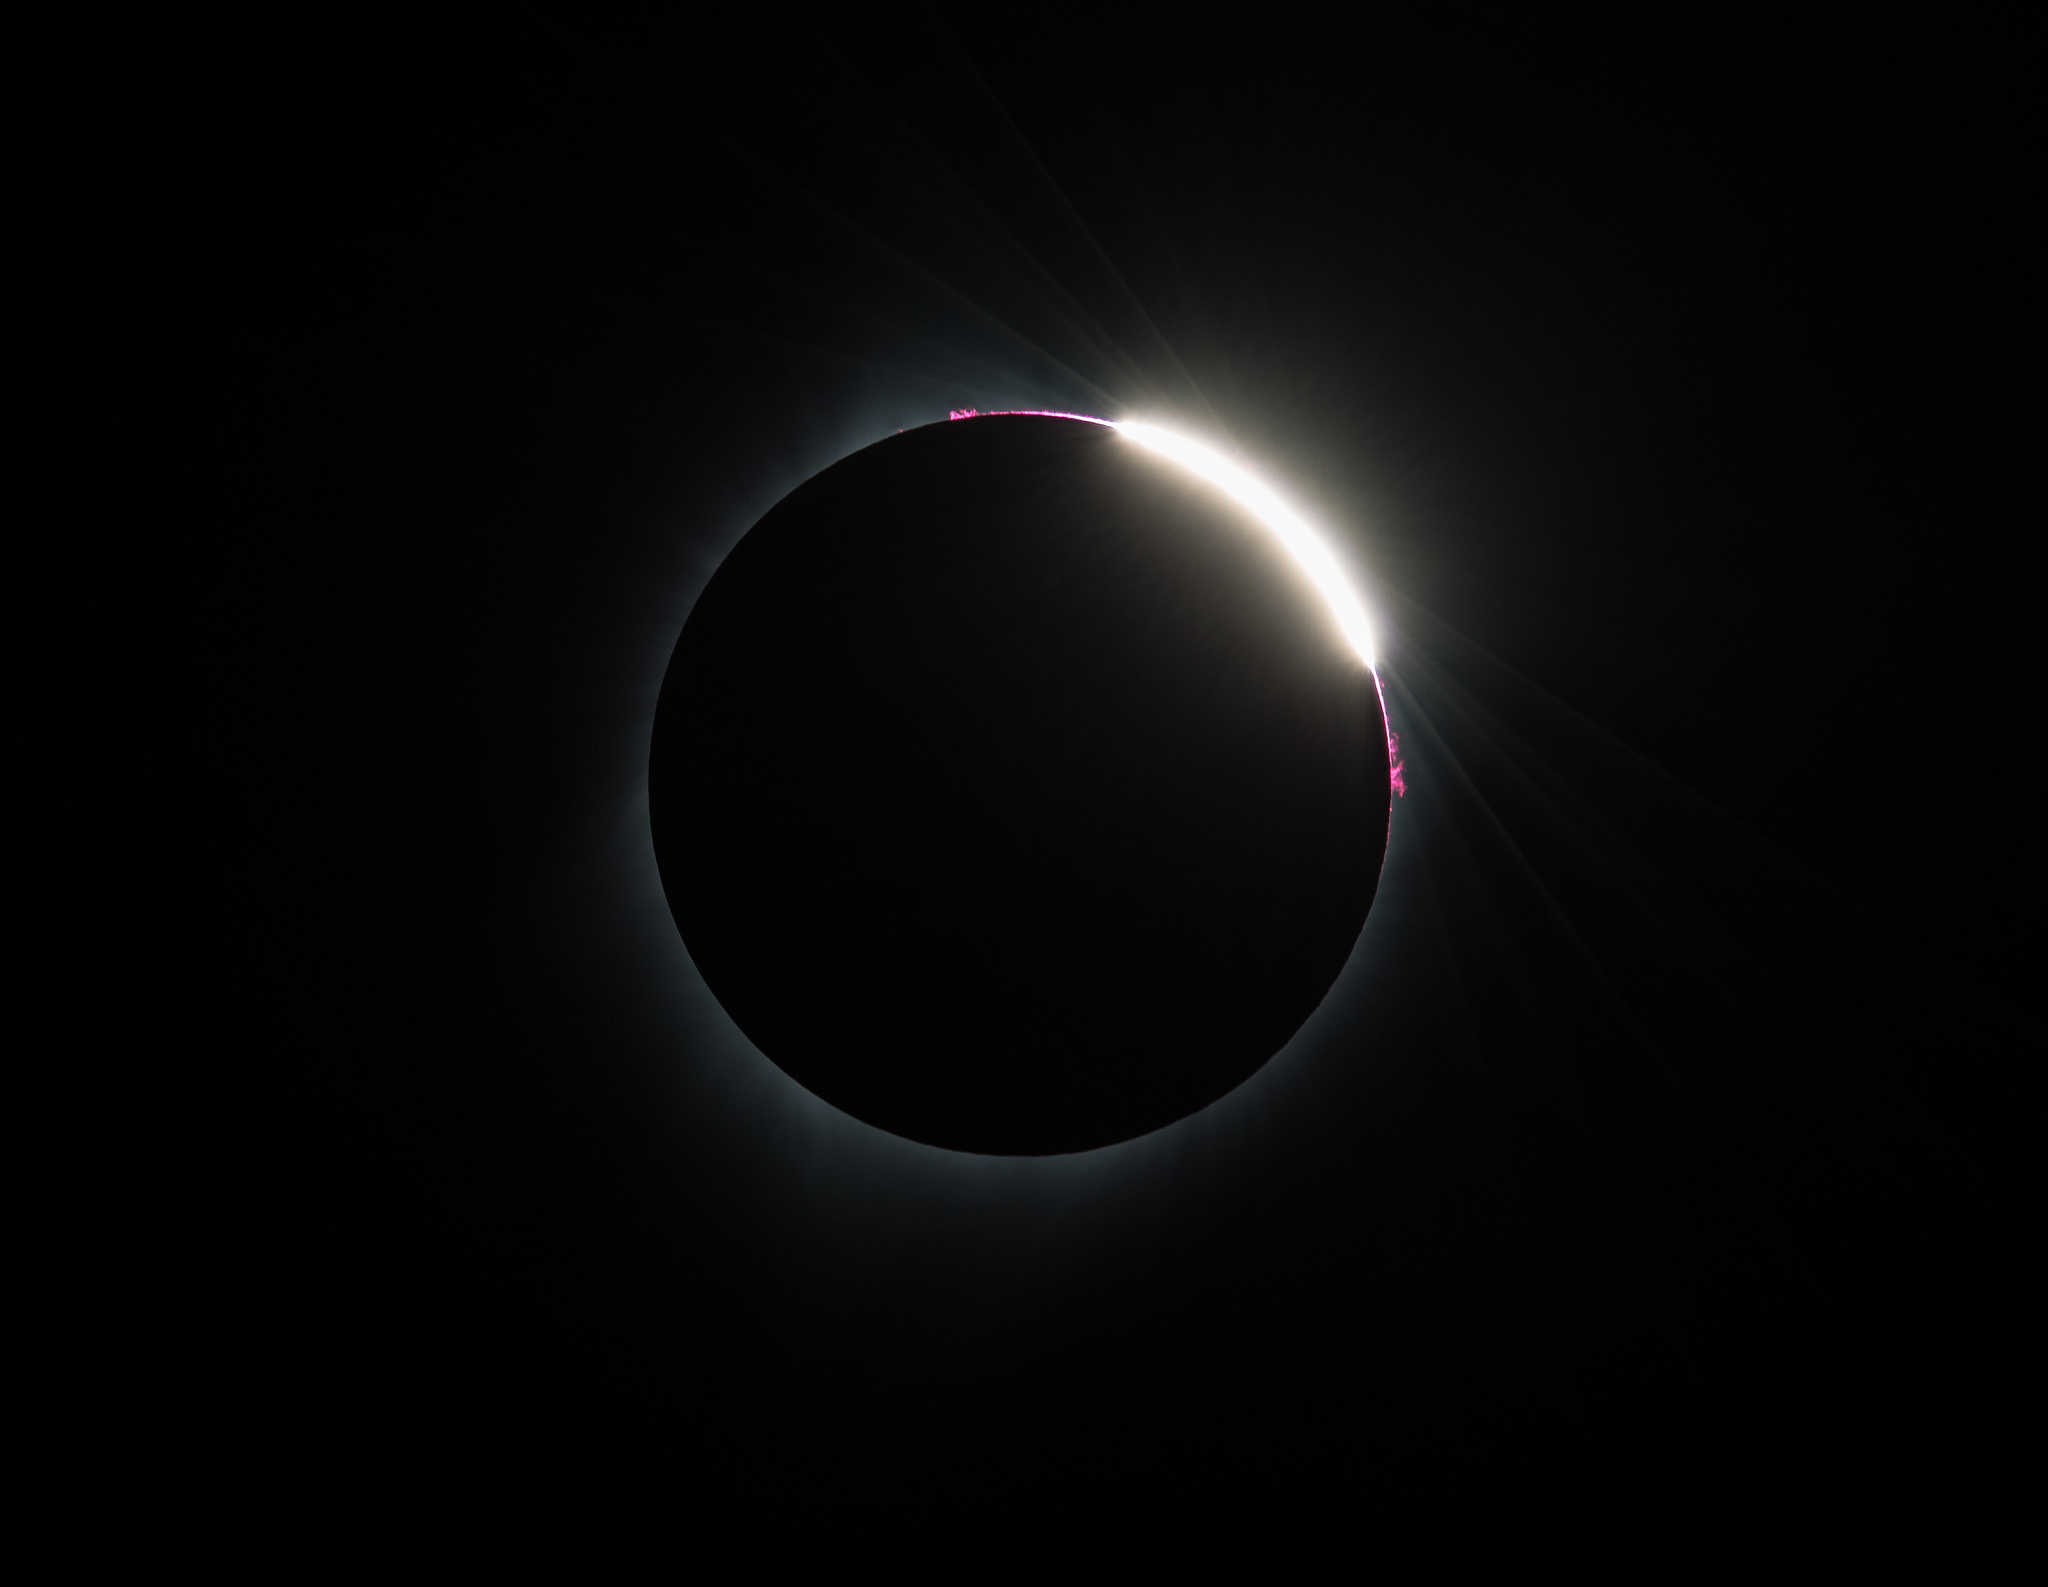 Eclipse de Sol 2 julio 2019